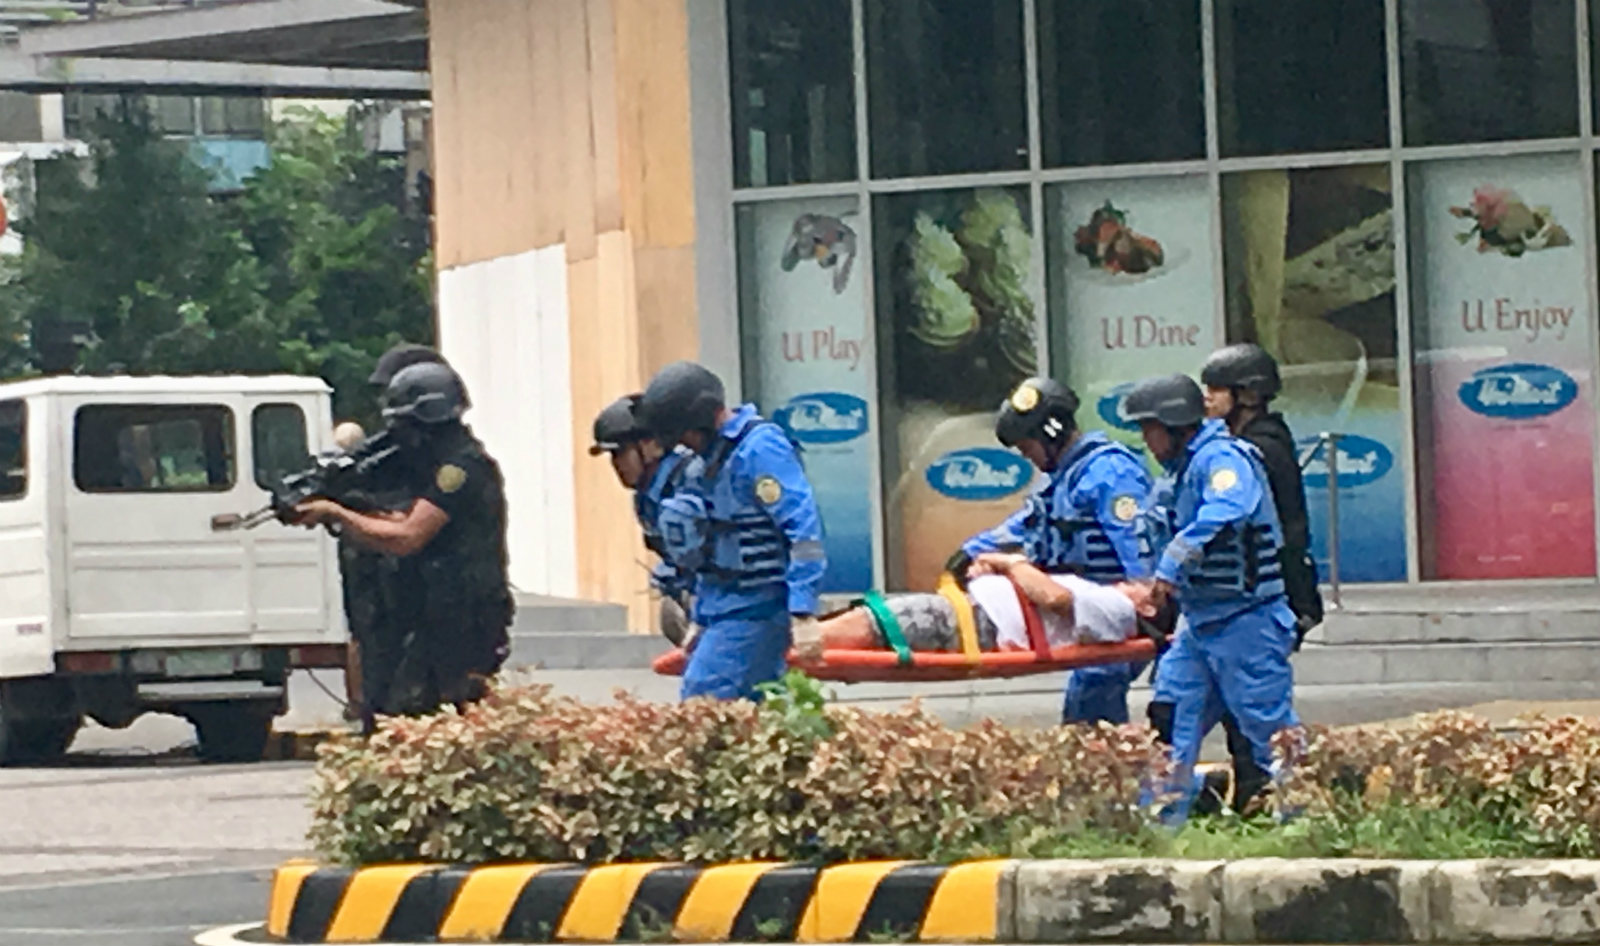 RESCUE. Pasig Rescue Task Force and SWAT members rescue wounded civilians inside Unimart. Photo by Abigail Abigan/Rappler